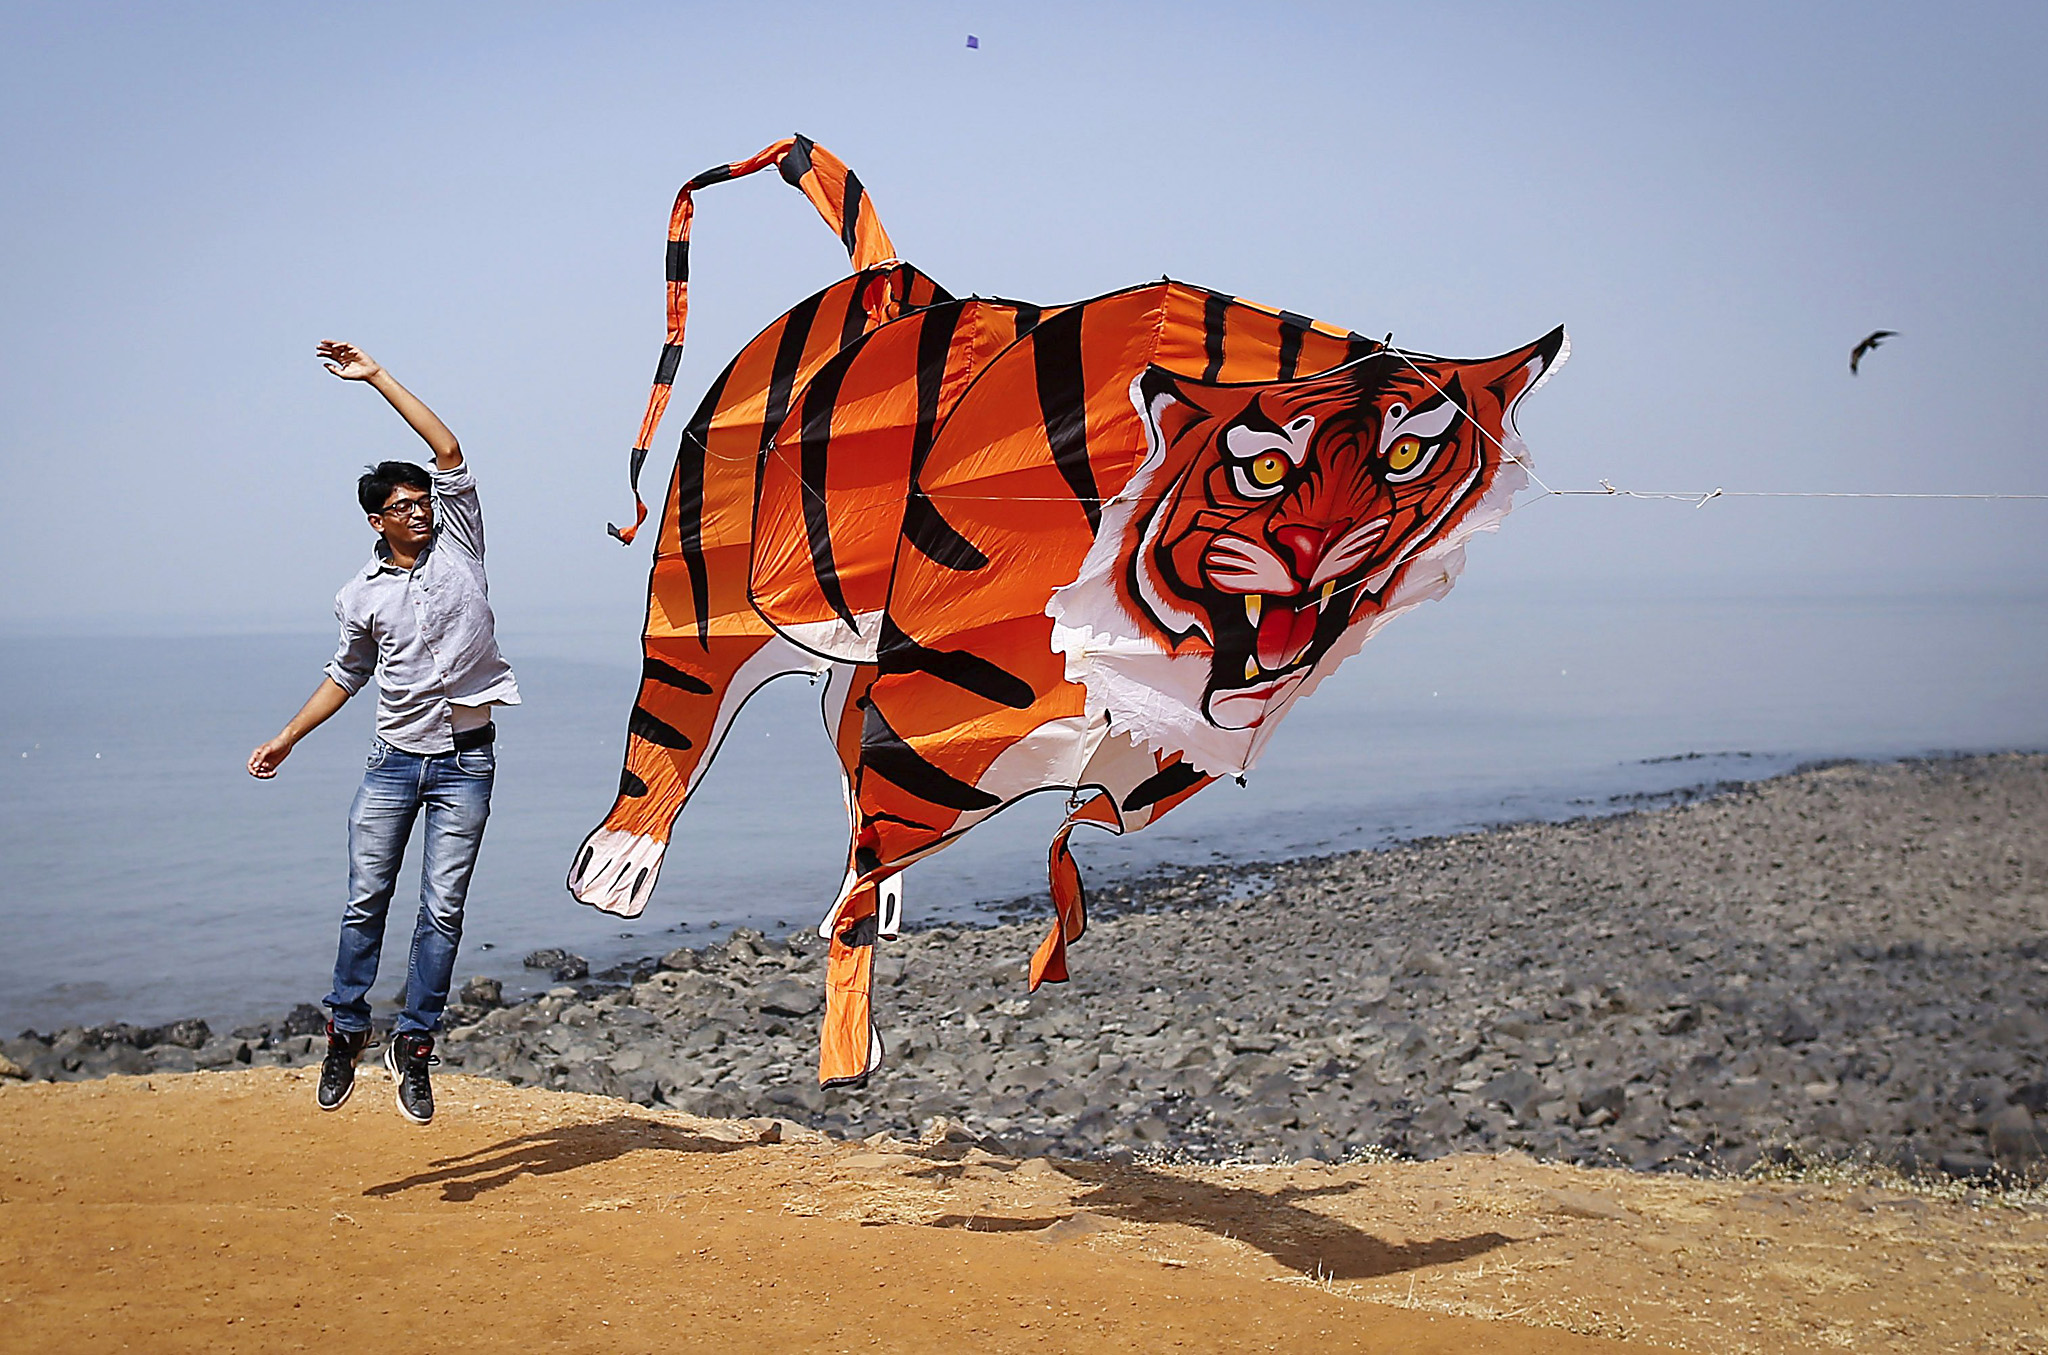 A participant flies a tiger shaped kite during the International Kite Festival in Mumbai...A participant flies a tiger shaped kite during the International Kite Festival in Mumbai January 8, 2014. REUTERS/Danish Siddiqui